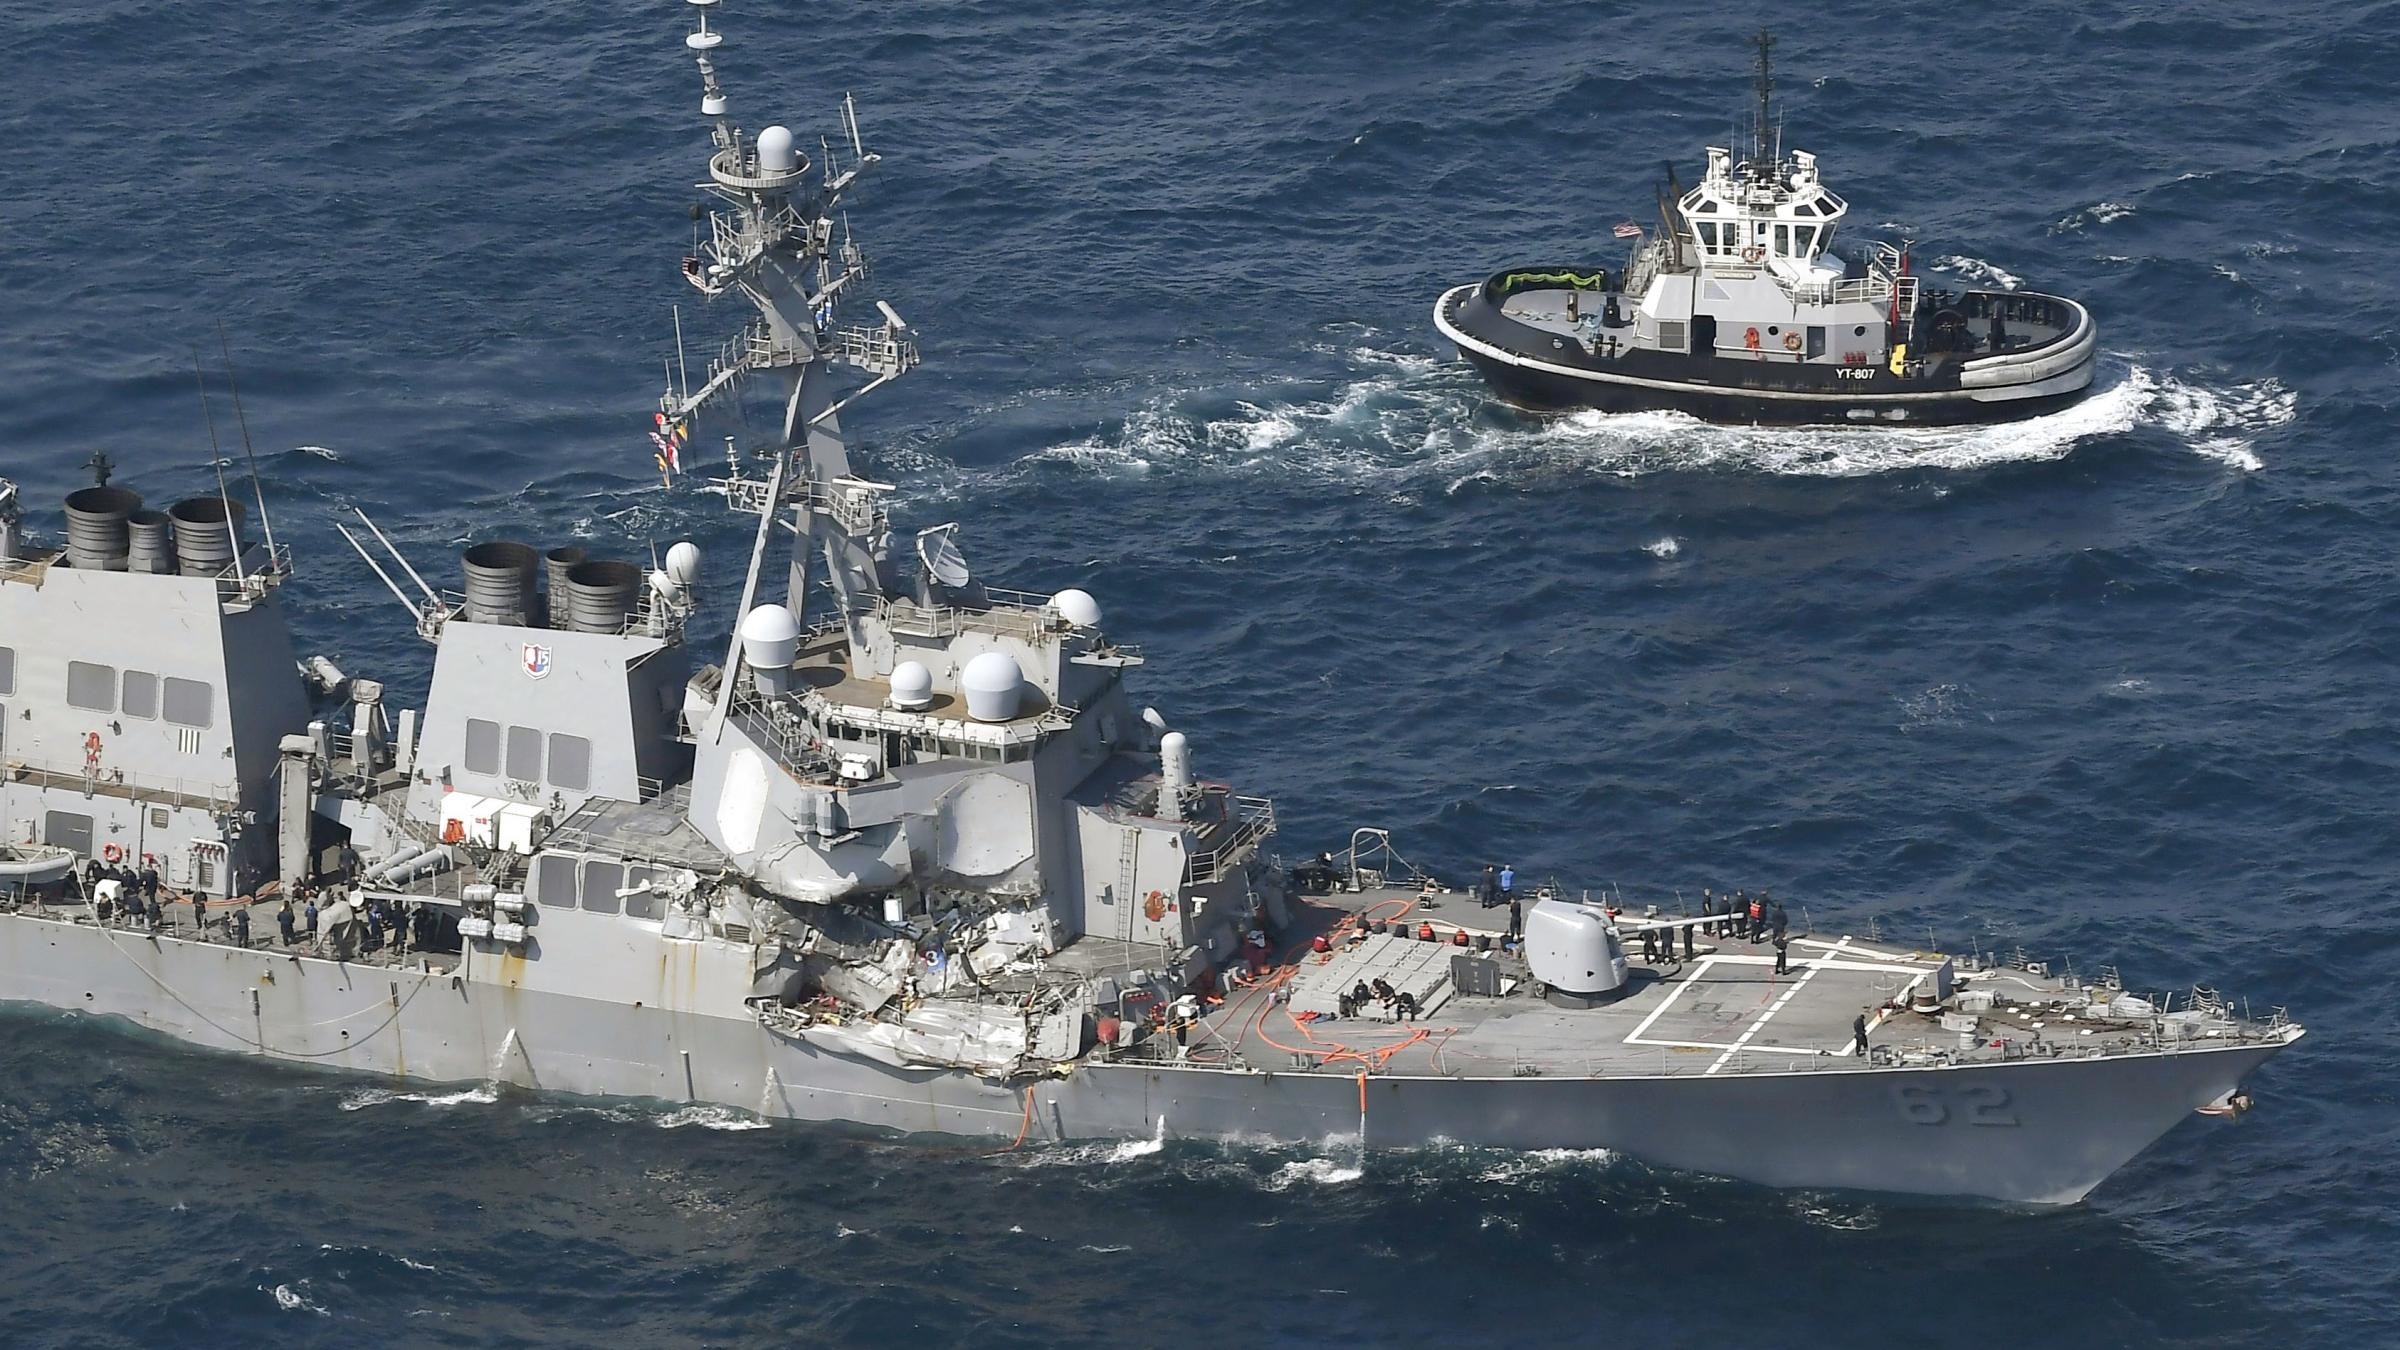 Seven US navy crew missing after collision